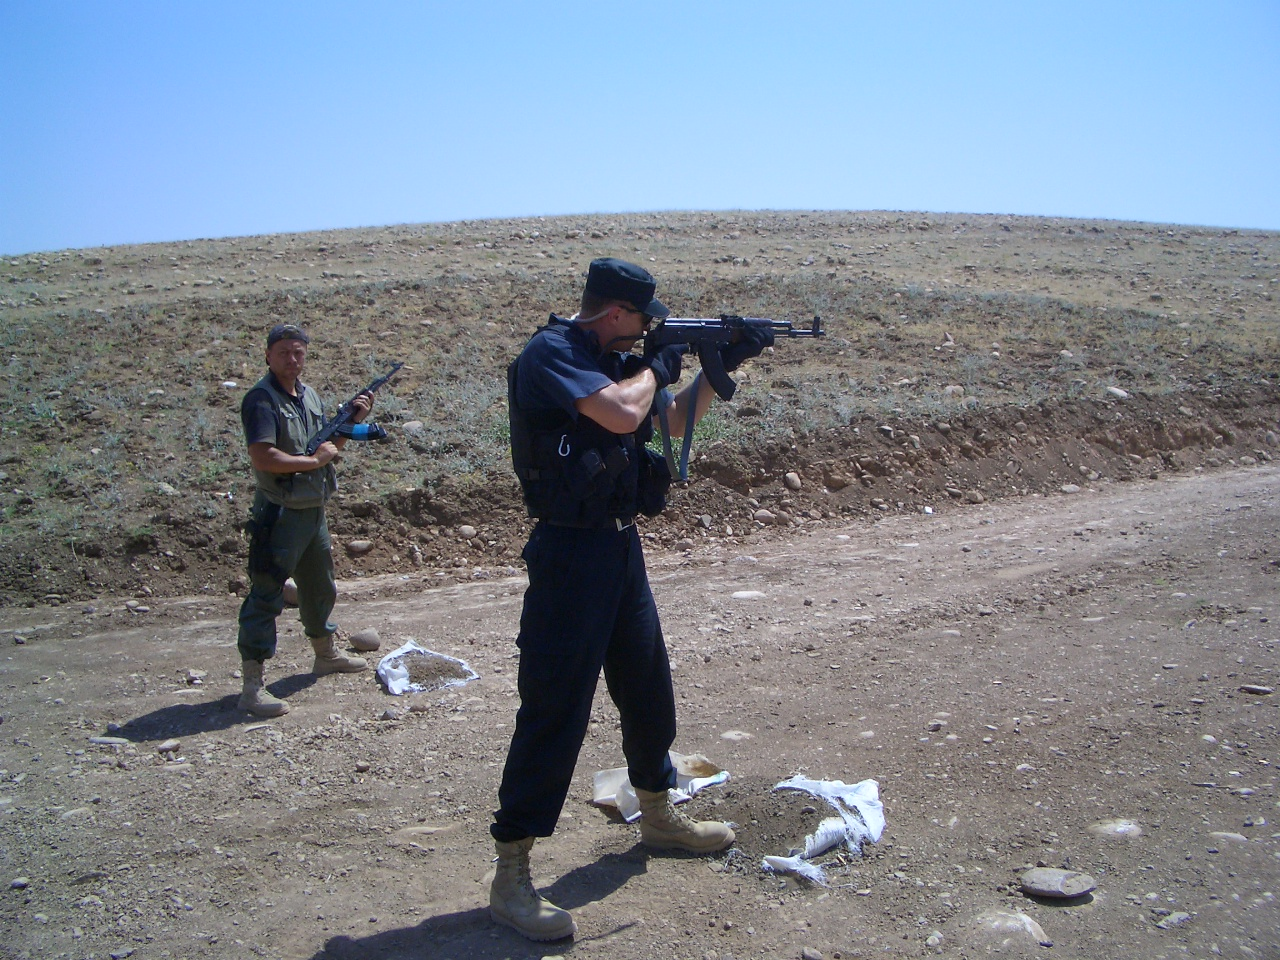 Oleg and Kosta on rifle line